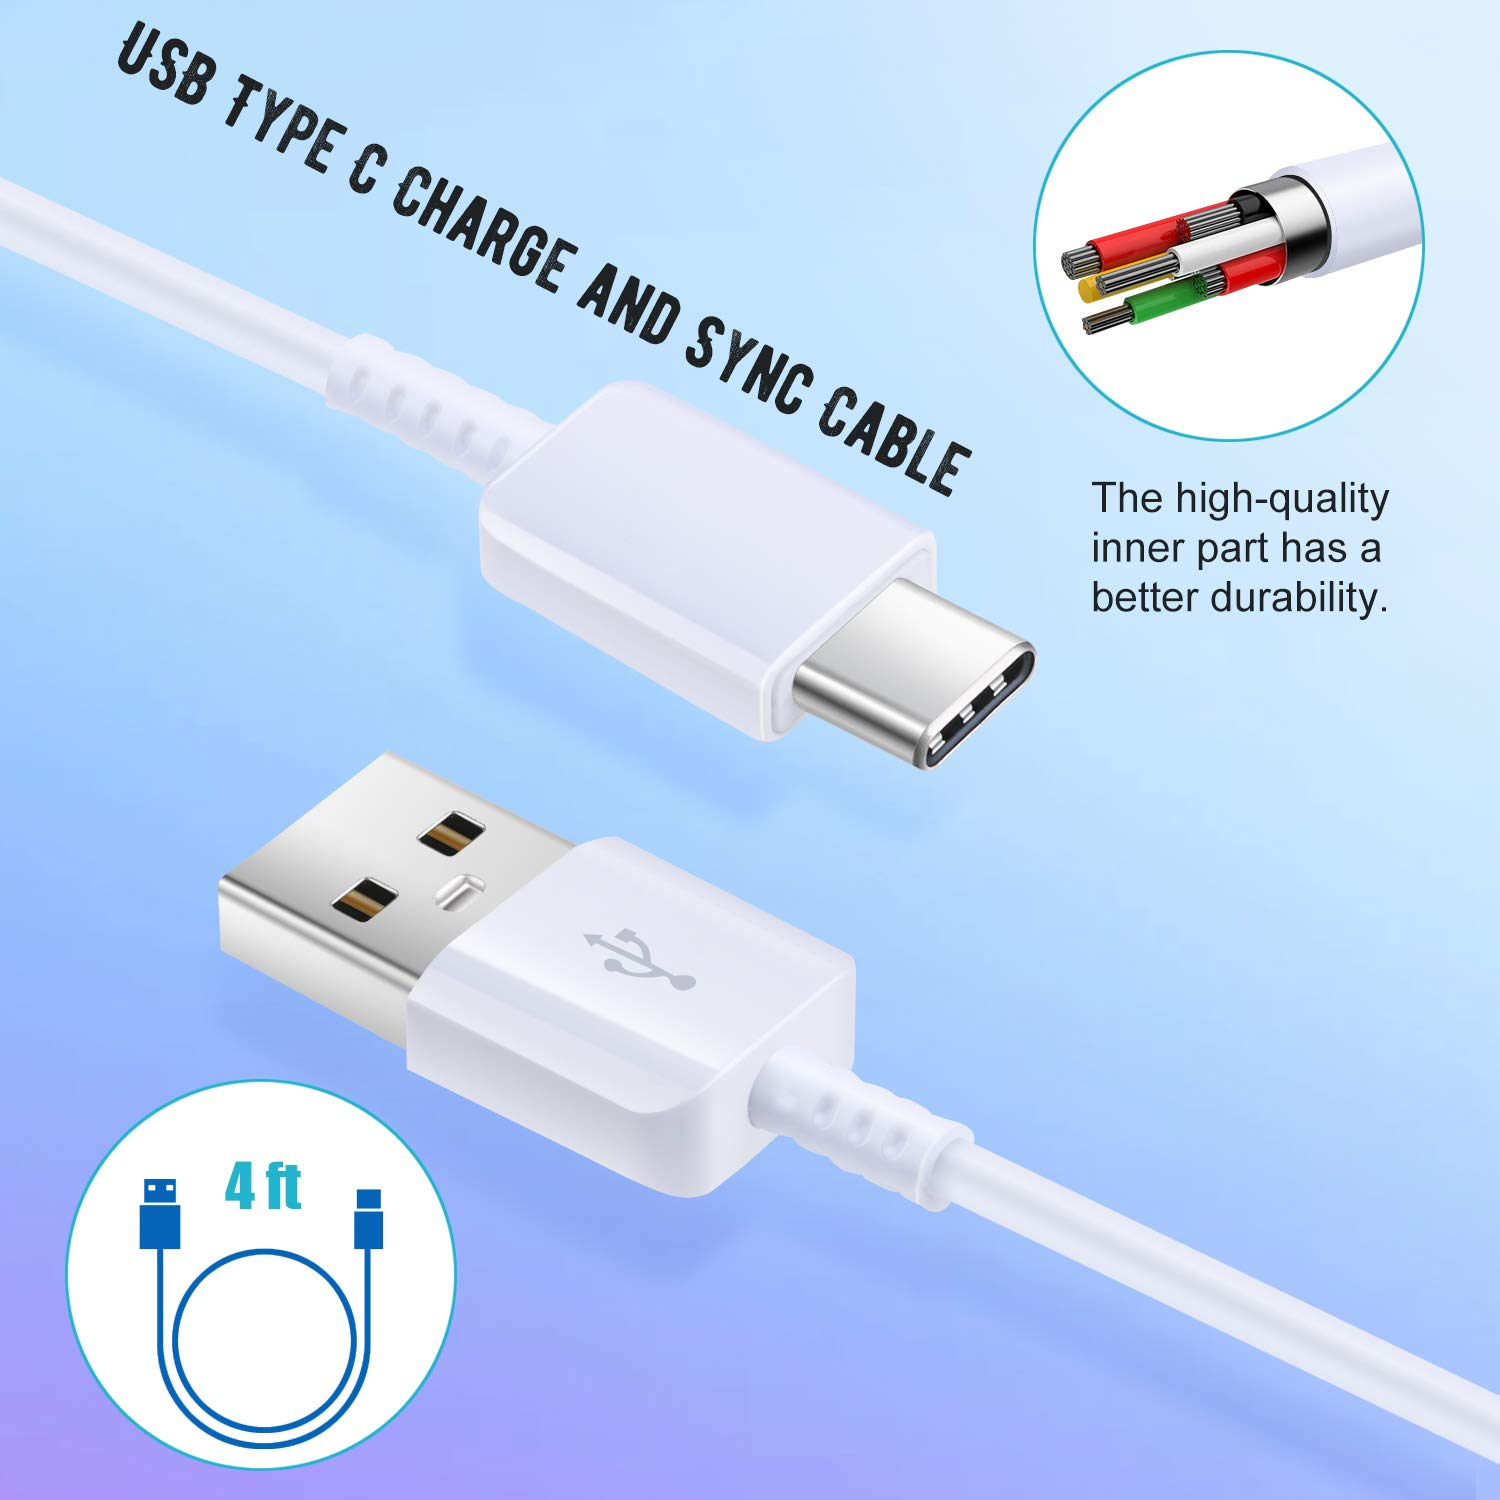 White Costyle 30W Dual 2 USB Car Charger Adapter with Quick Charge QC 3.0 Port and 3.1A Port and 2 Pack 4ft USB Type C Fast Charging Cable Compatible for Samsung Galaxy S10 S9 S8 Plus Car Charger